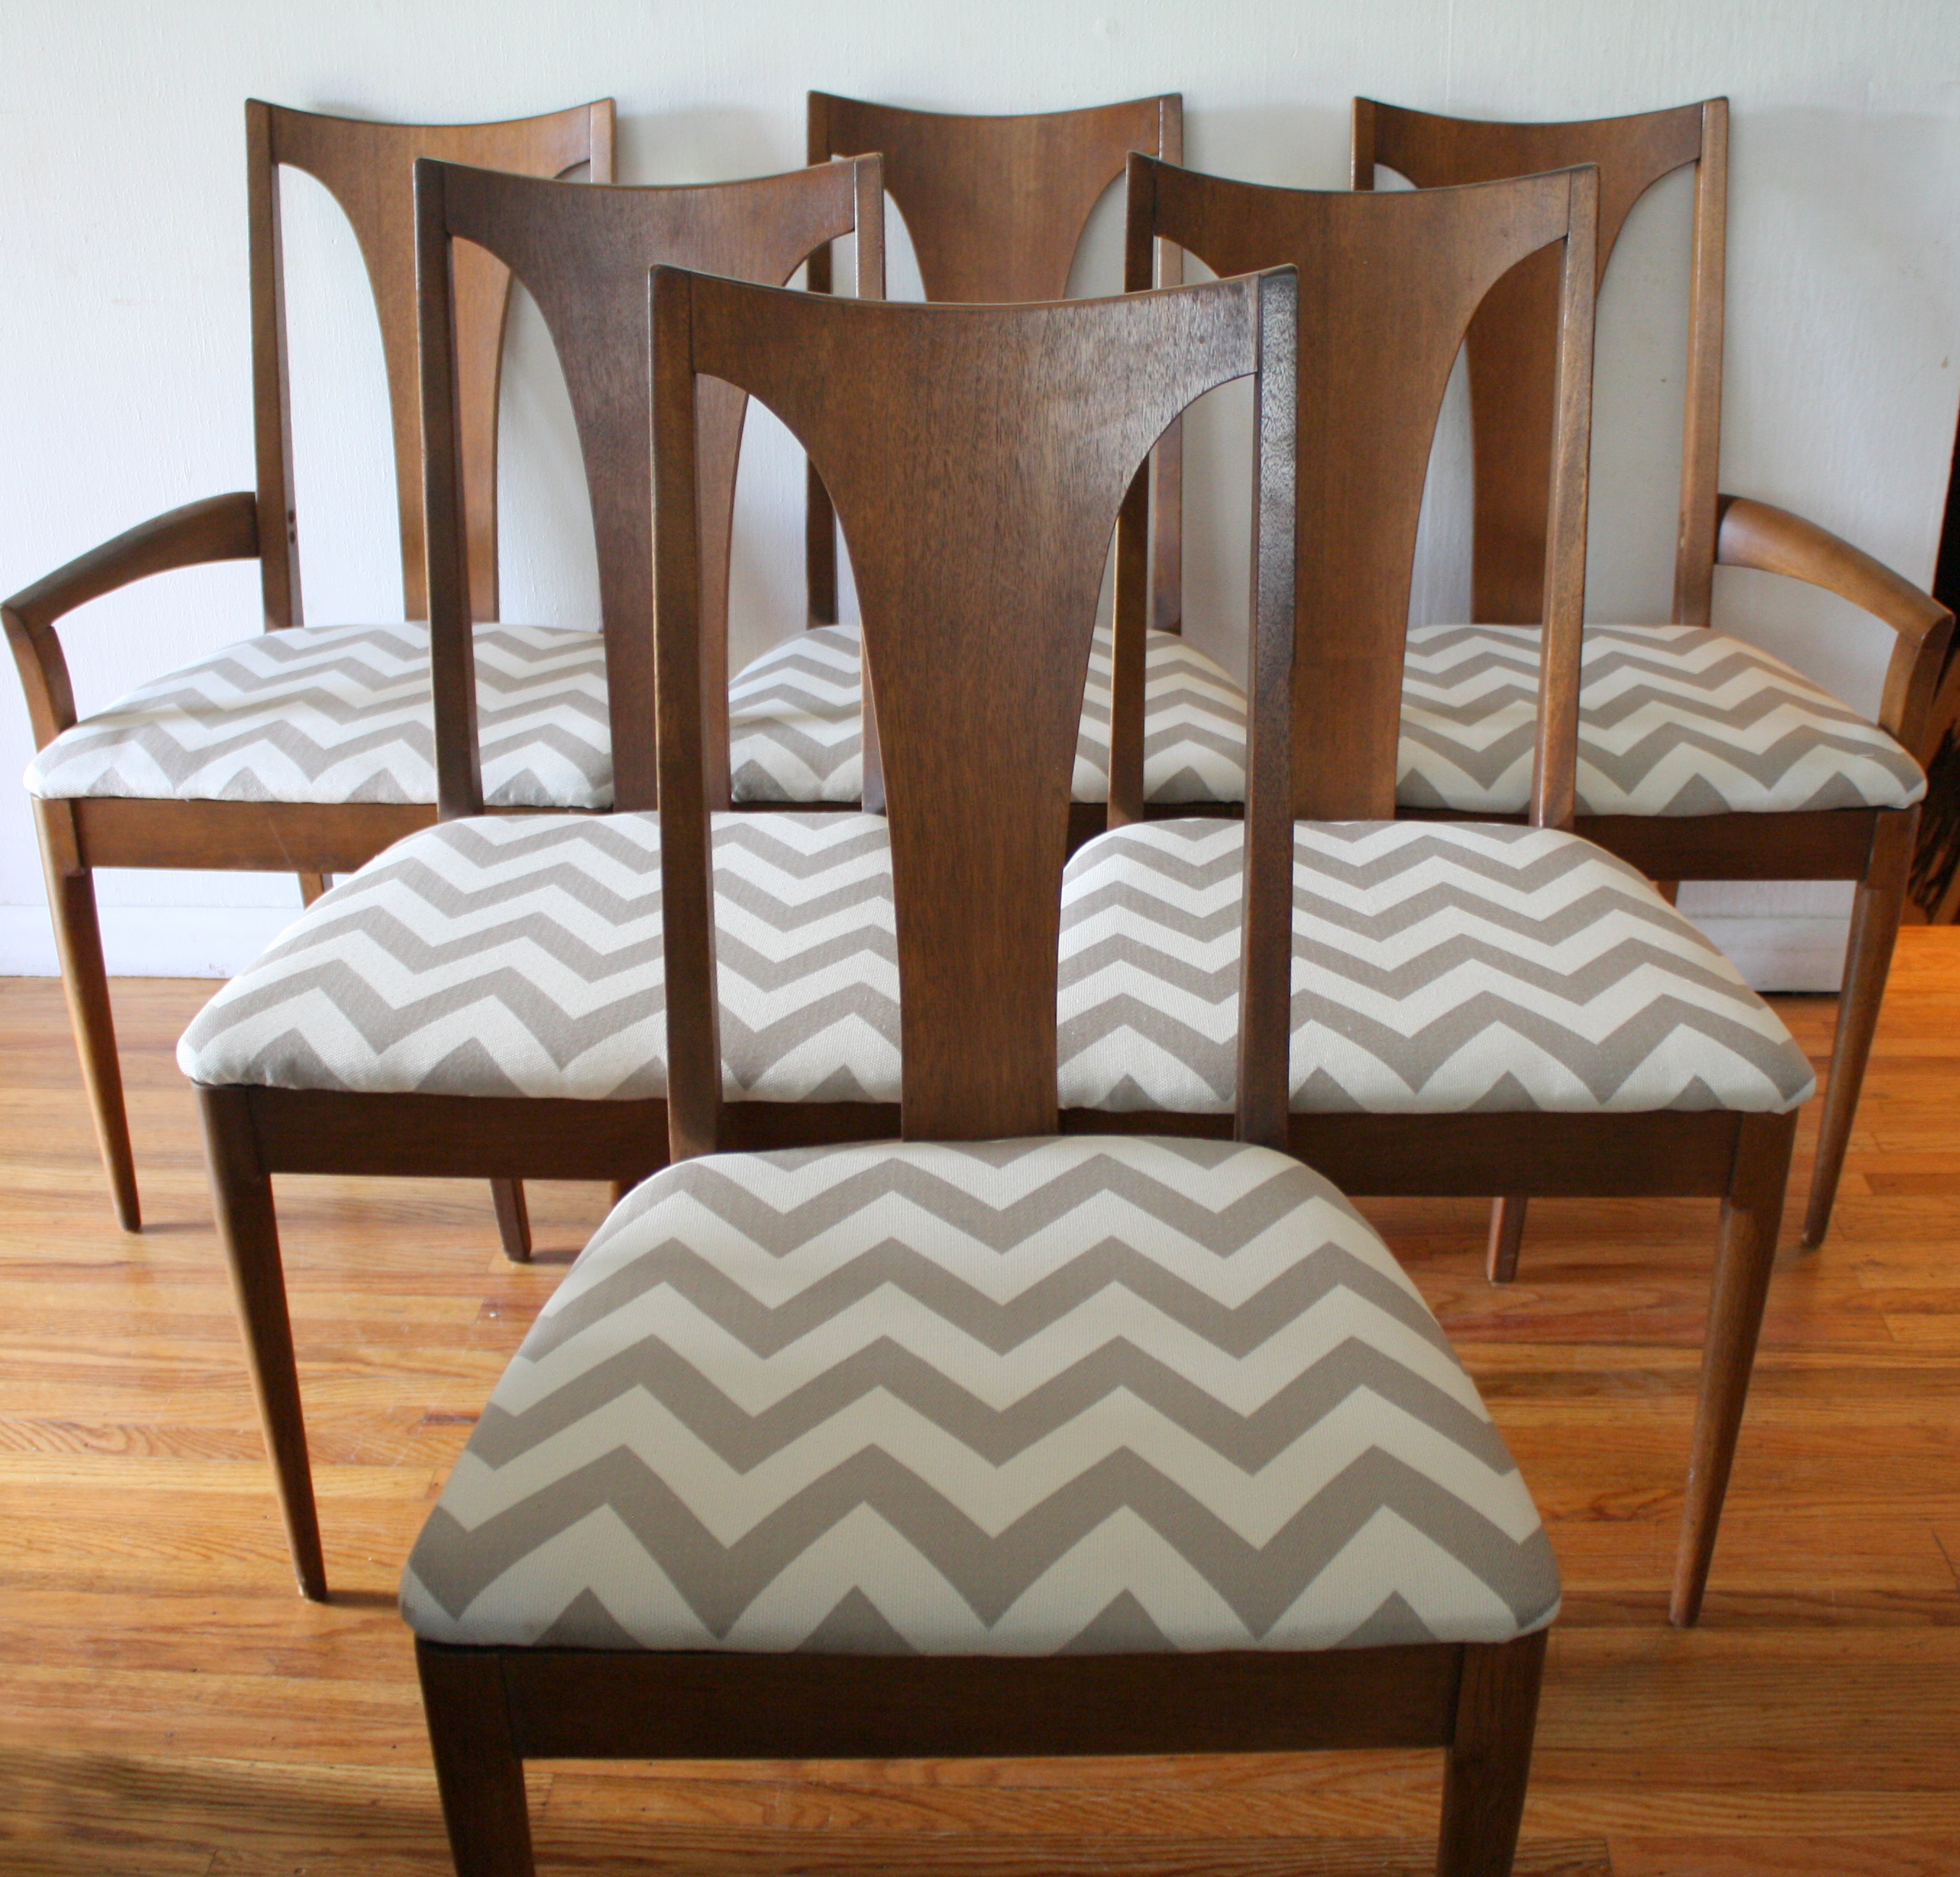 Dining Chairs Set Mid Century Modern Dining Chair Set From The Broyhill